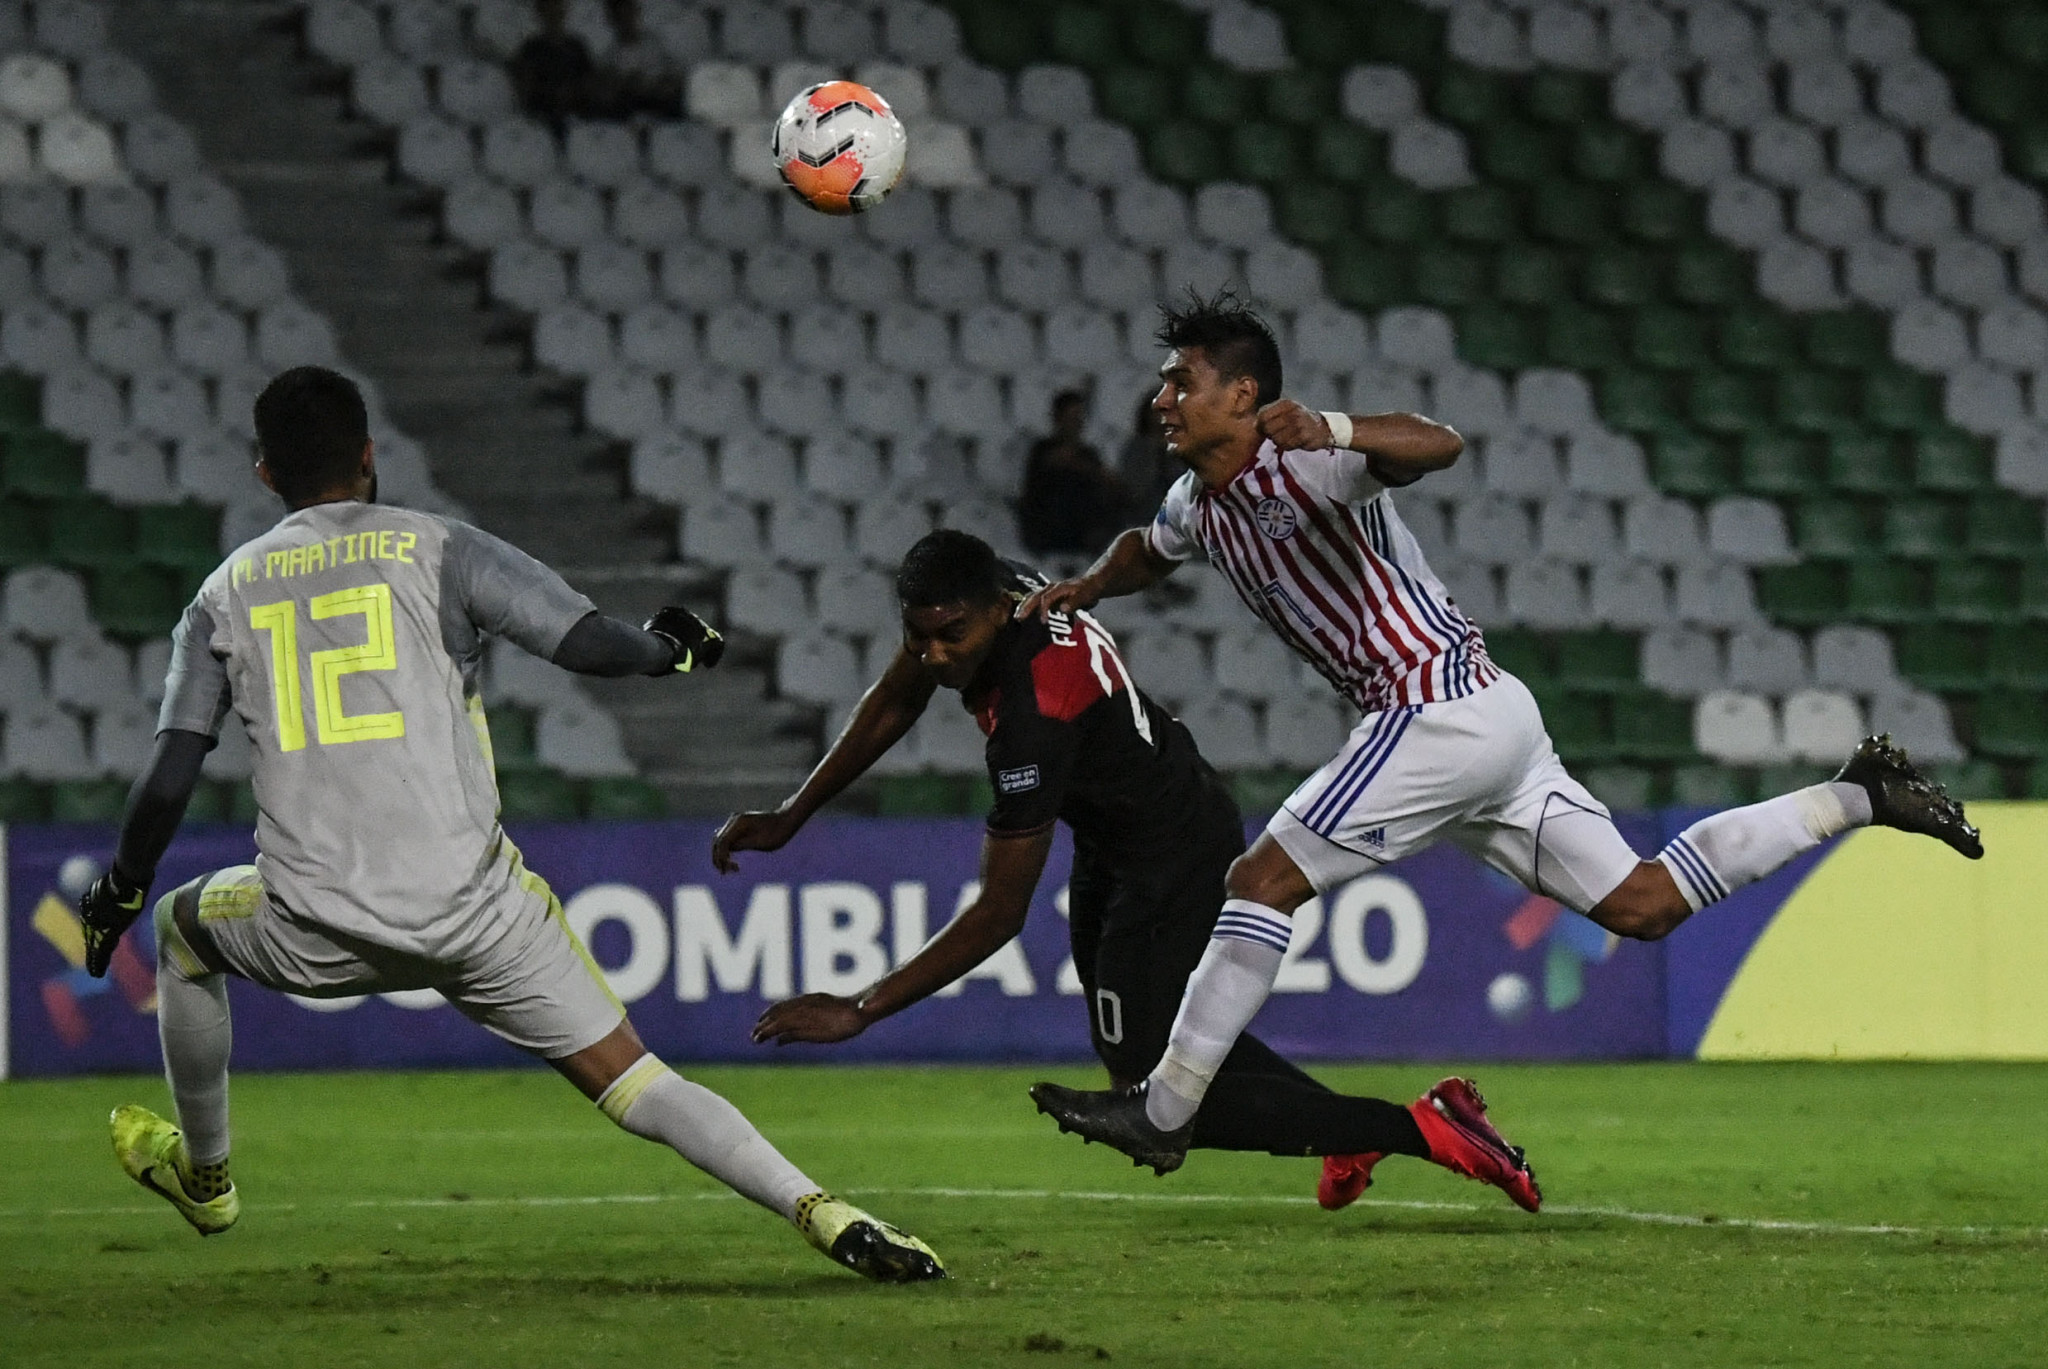 Paraguay defender Santiago Arzamendia scores an own goal in his side's 3-2 defeat to Peru ©Getty Images